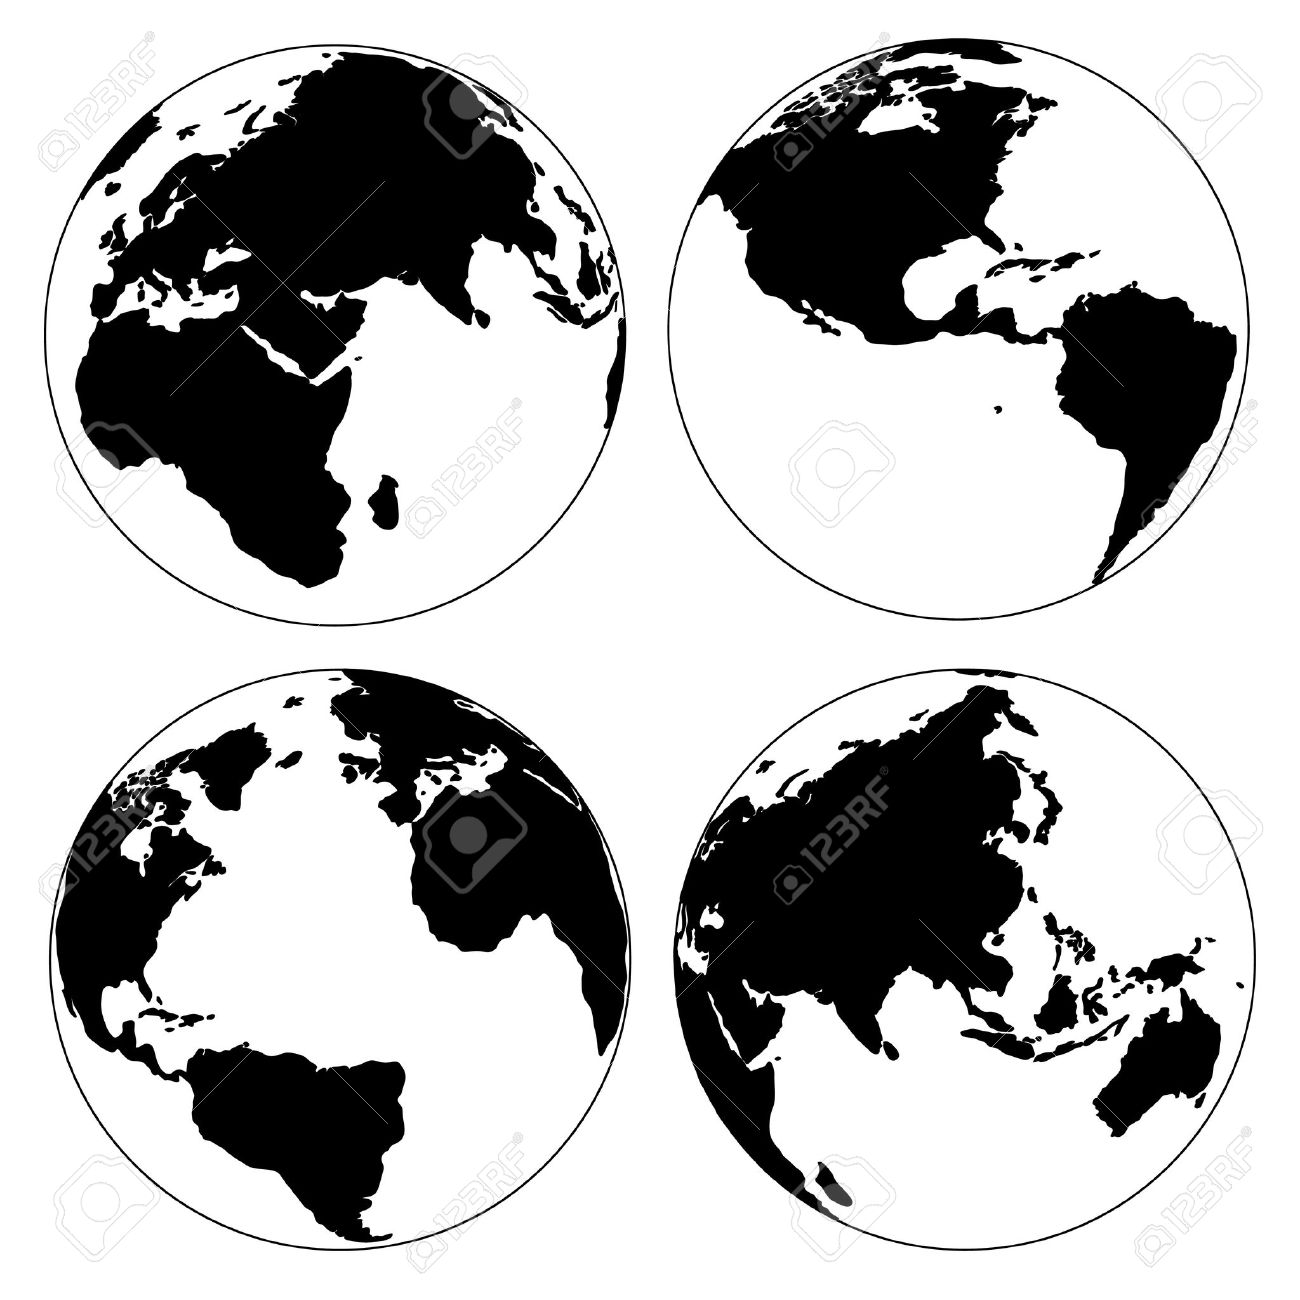 World map and globe detail vector illustration royalty free cliparts vector world map and globe detail vector illustration gumiabroncs Choice Image